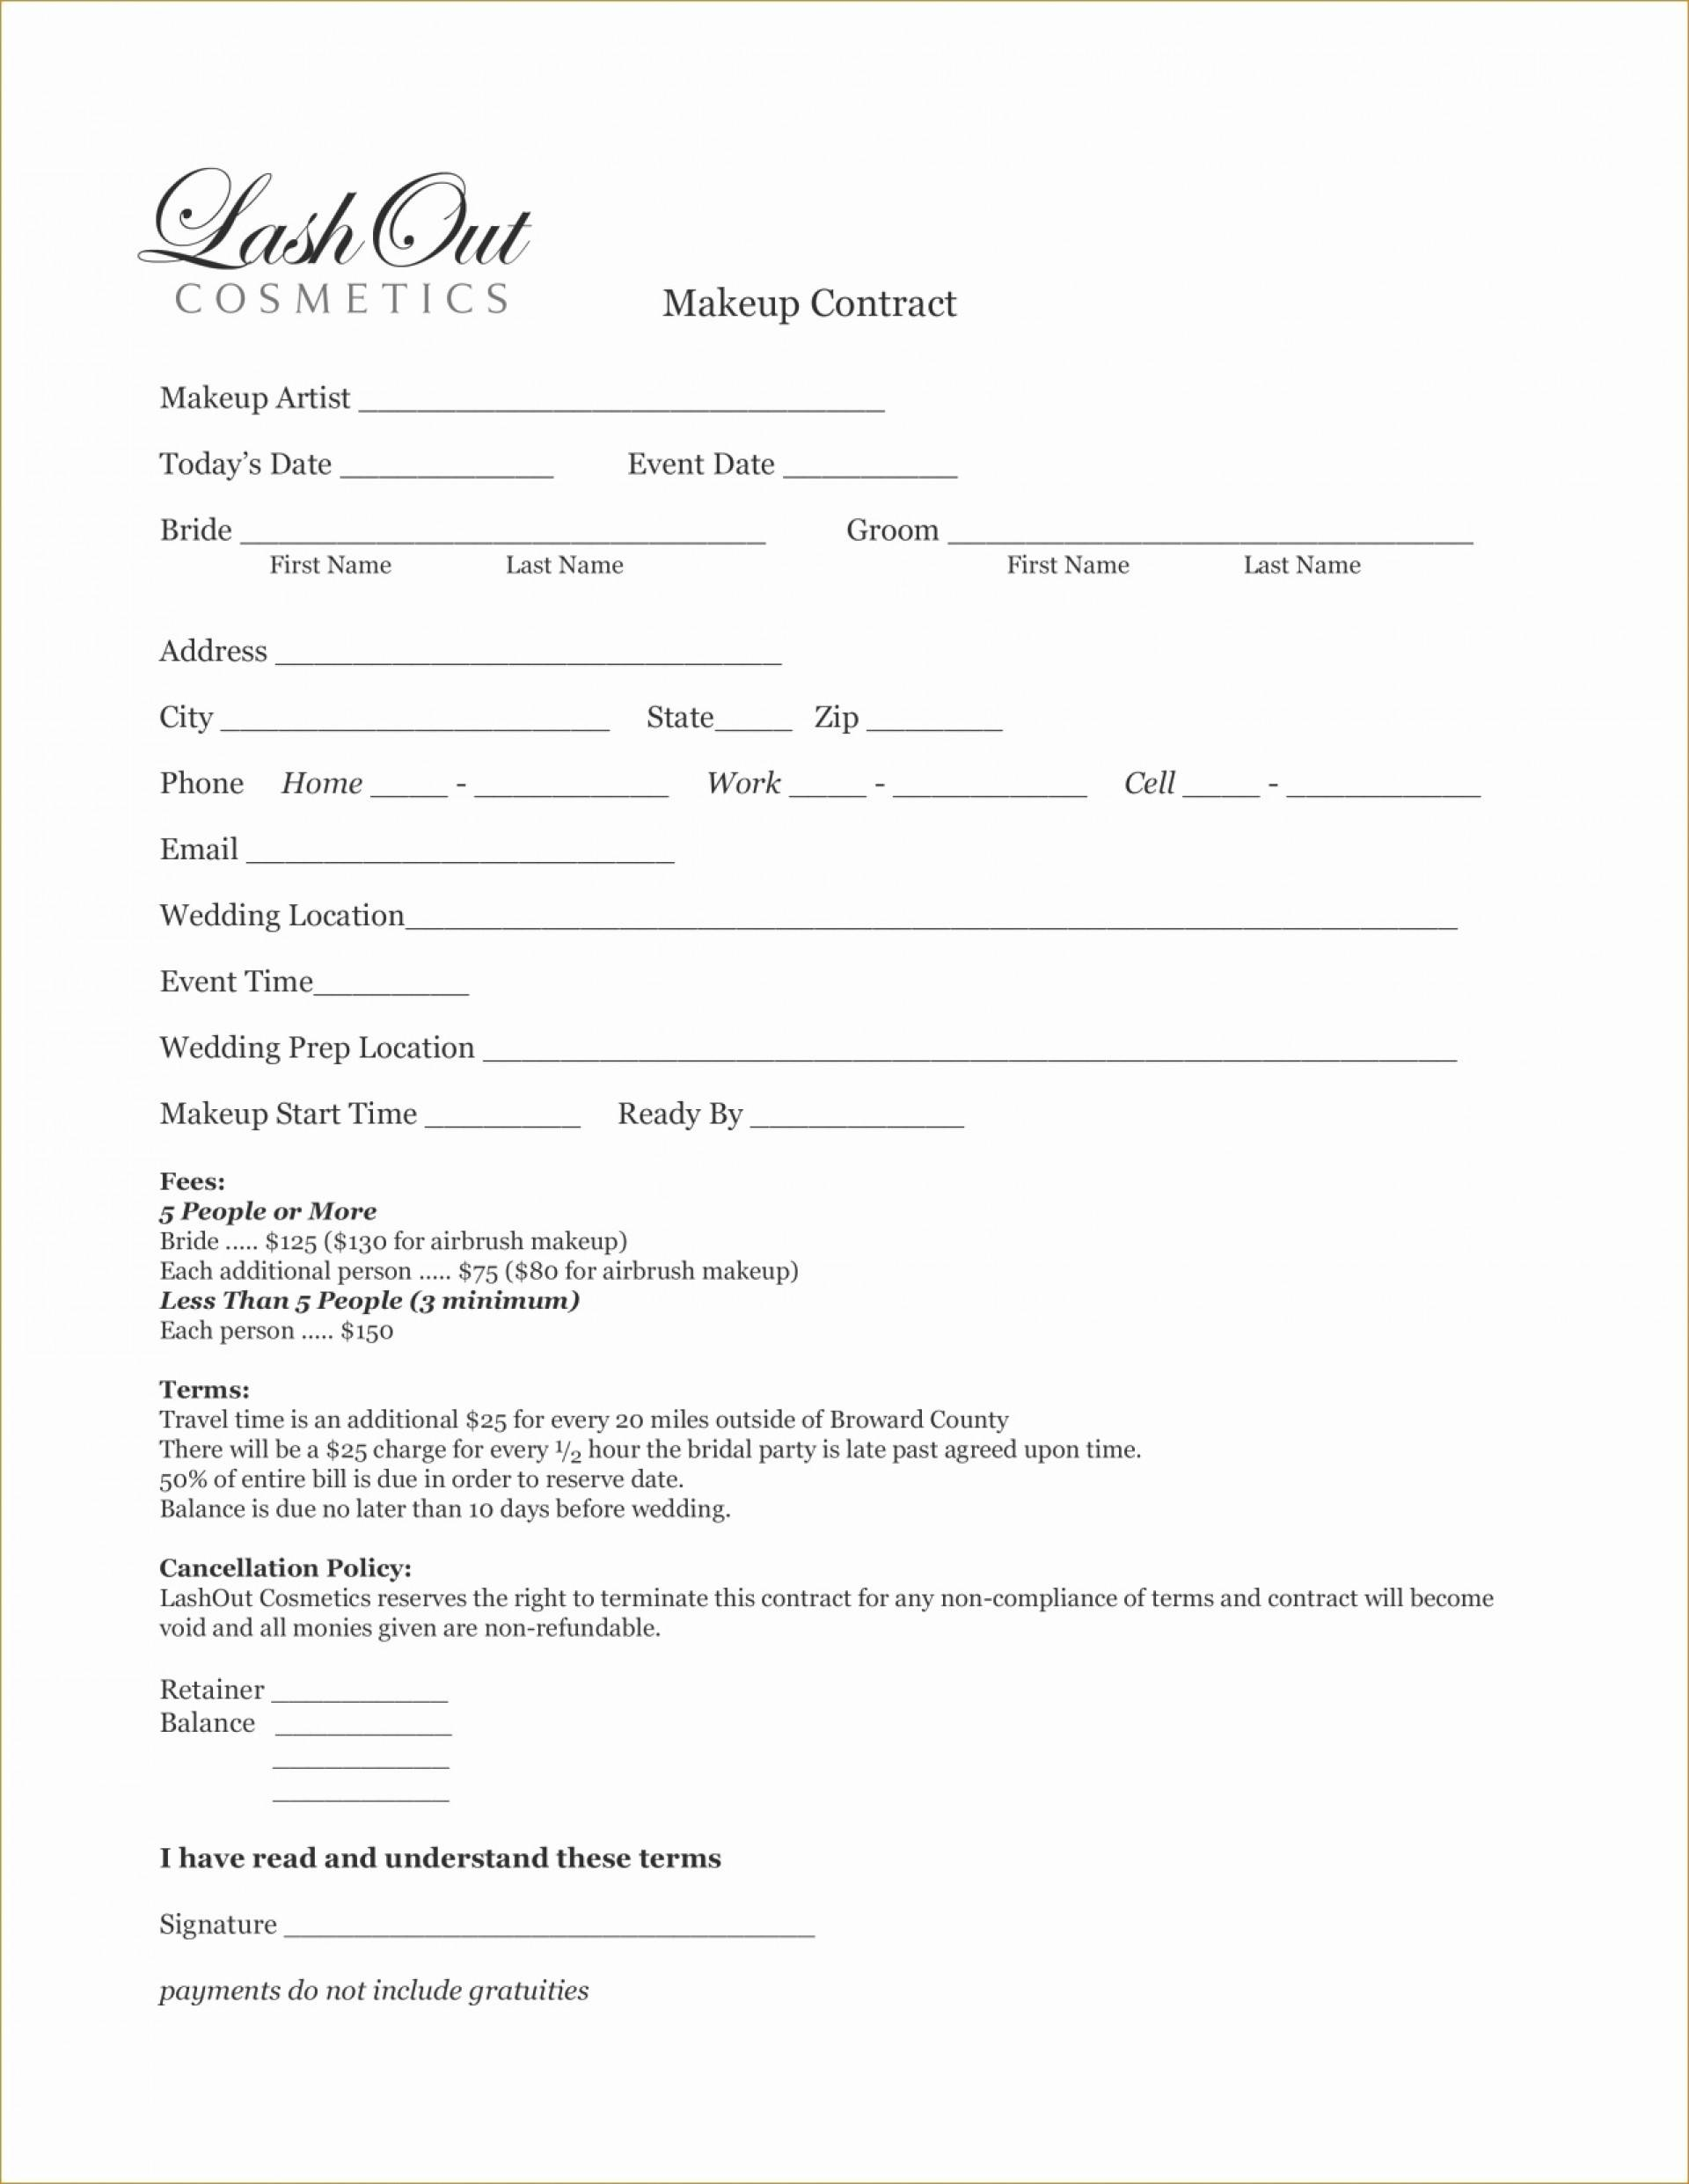 Makeup Artist Bridal Contract Template